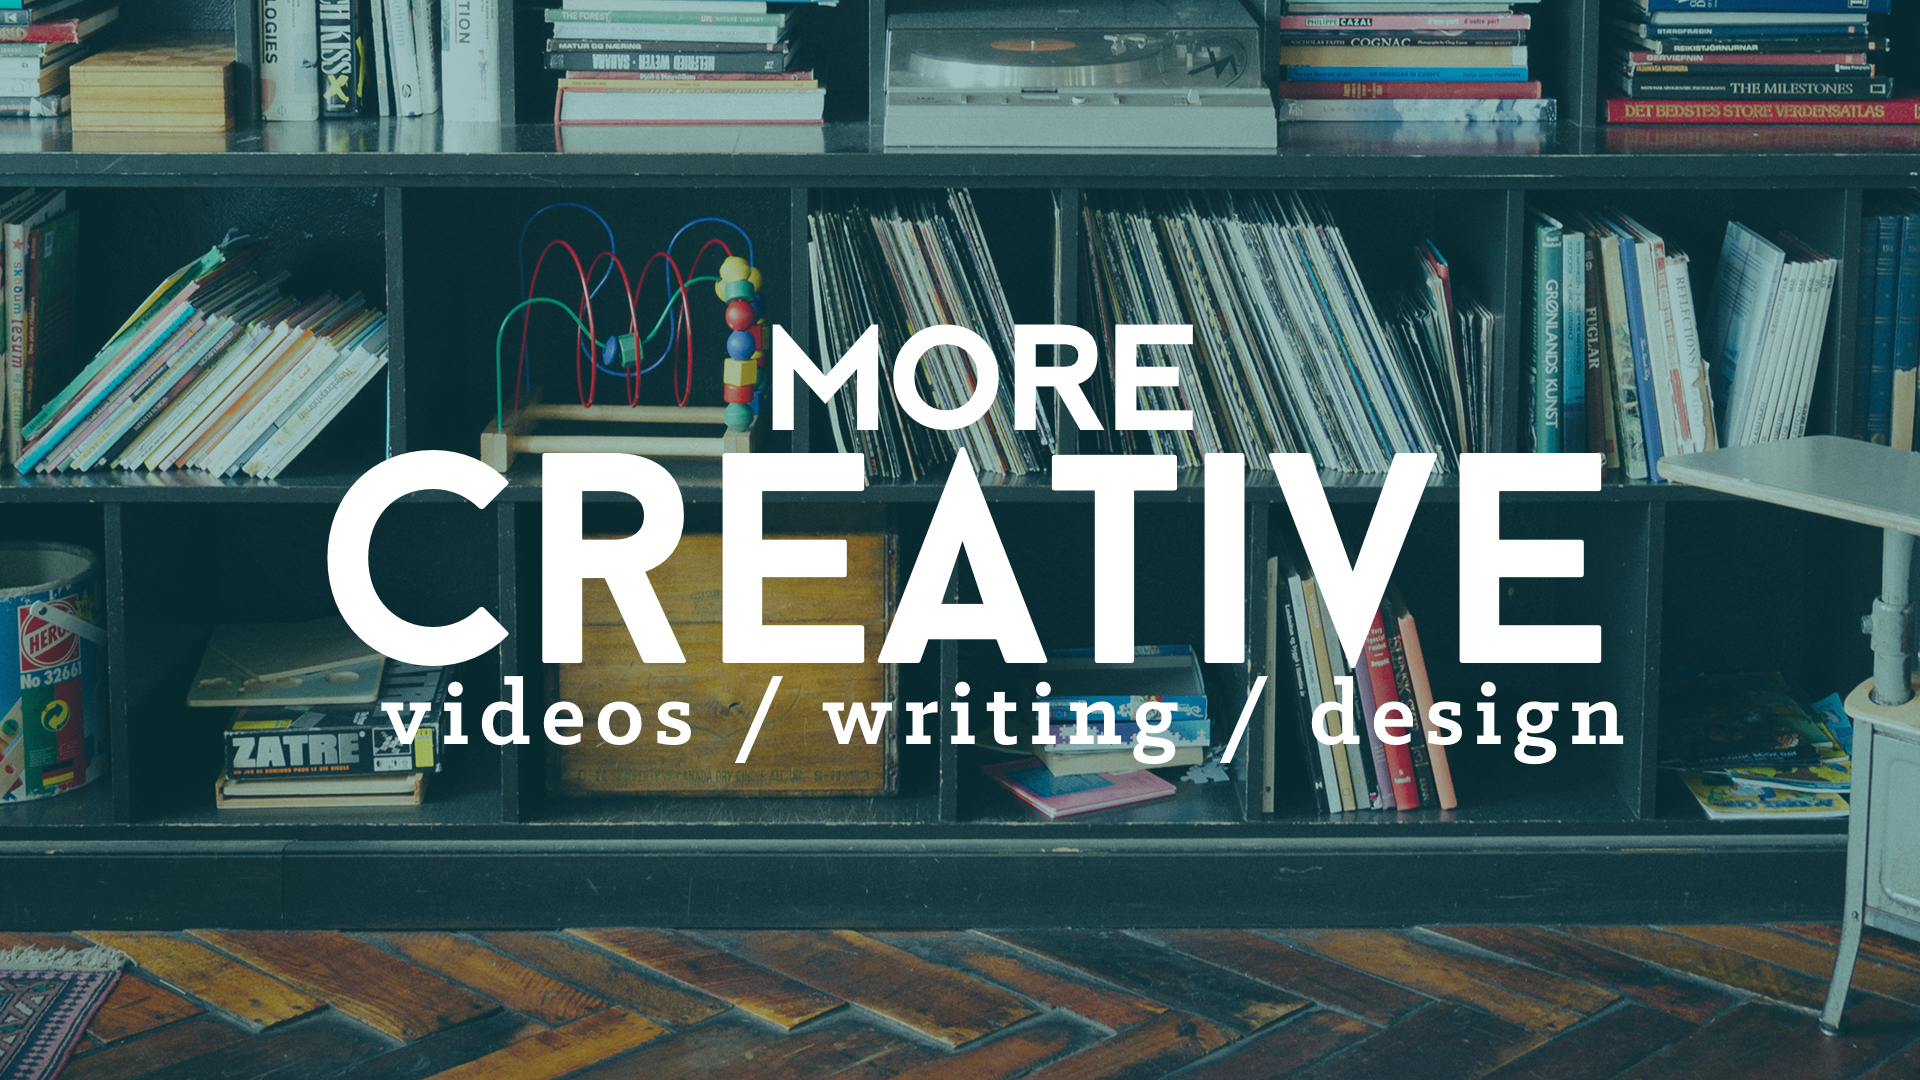 amplify more creative - videos and writing.jpg